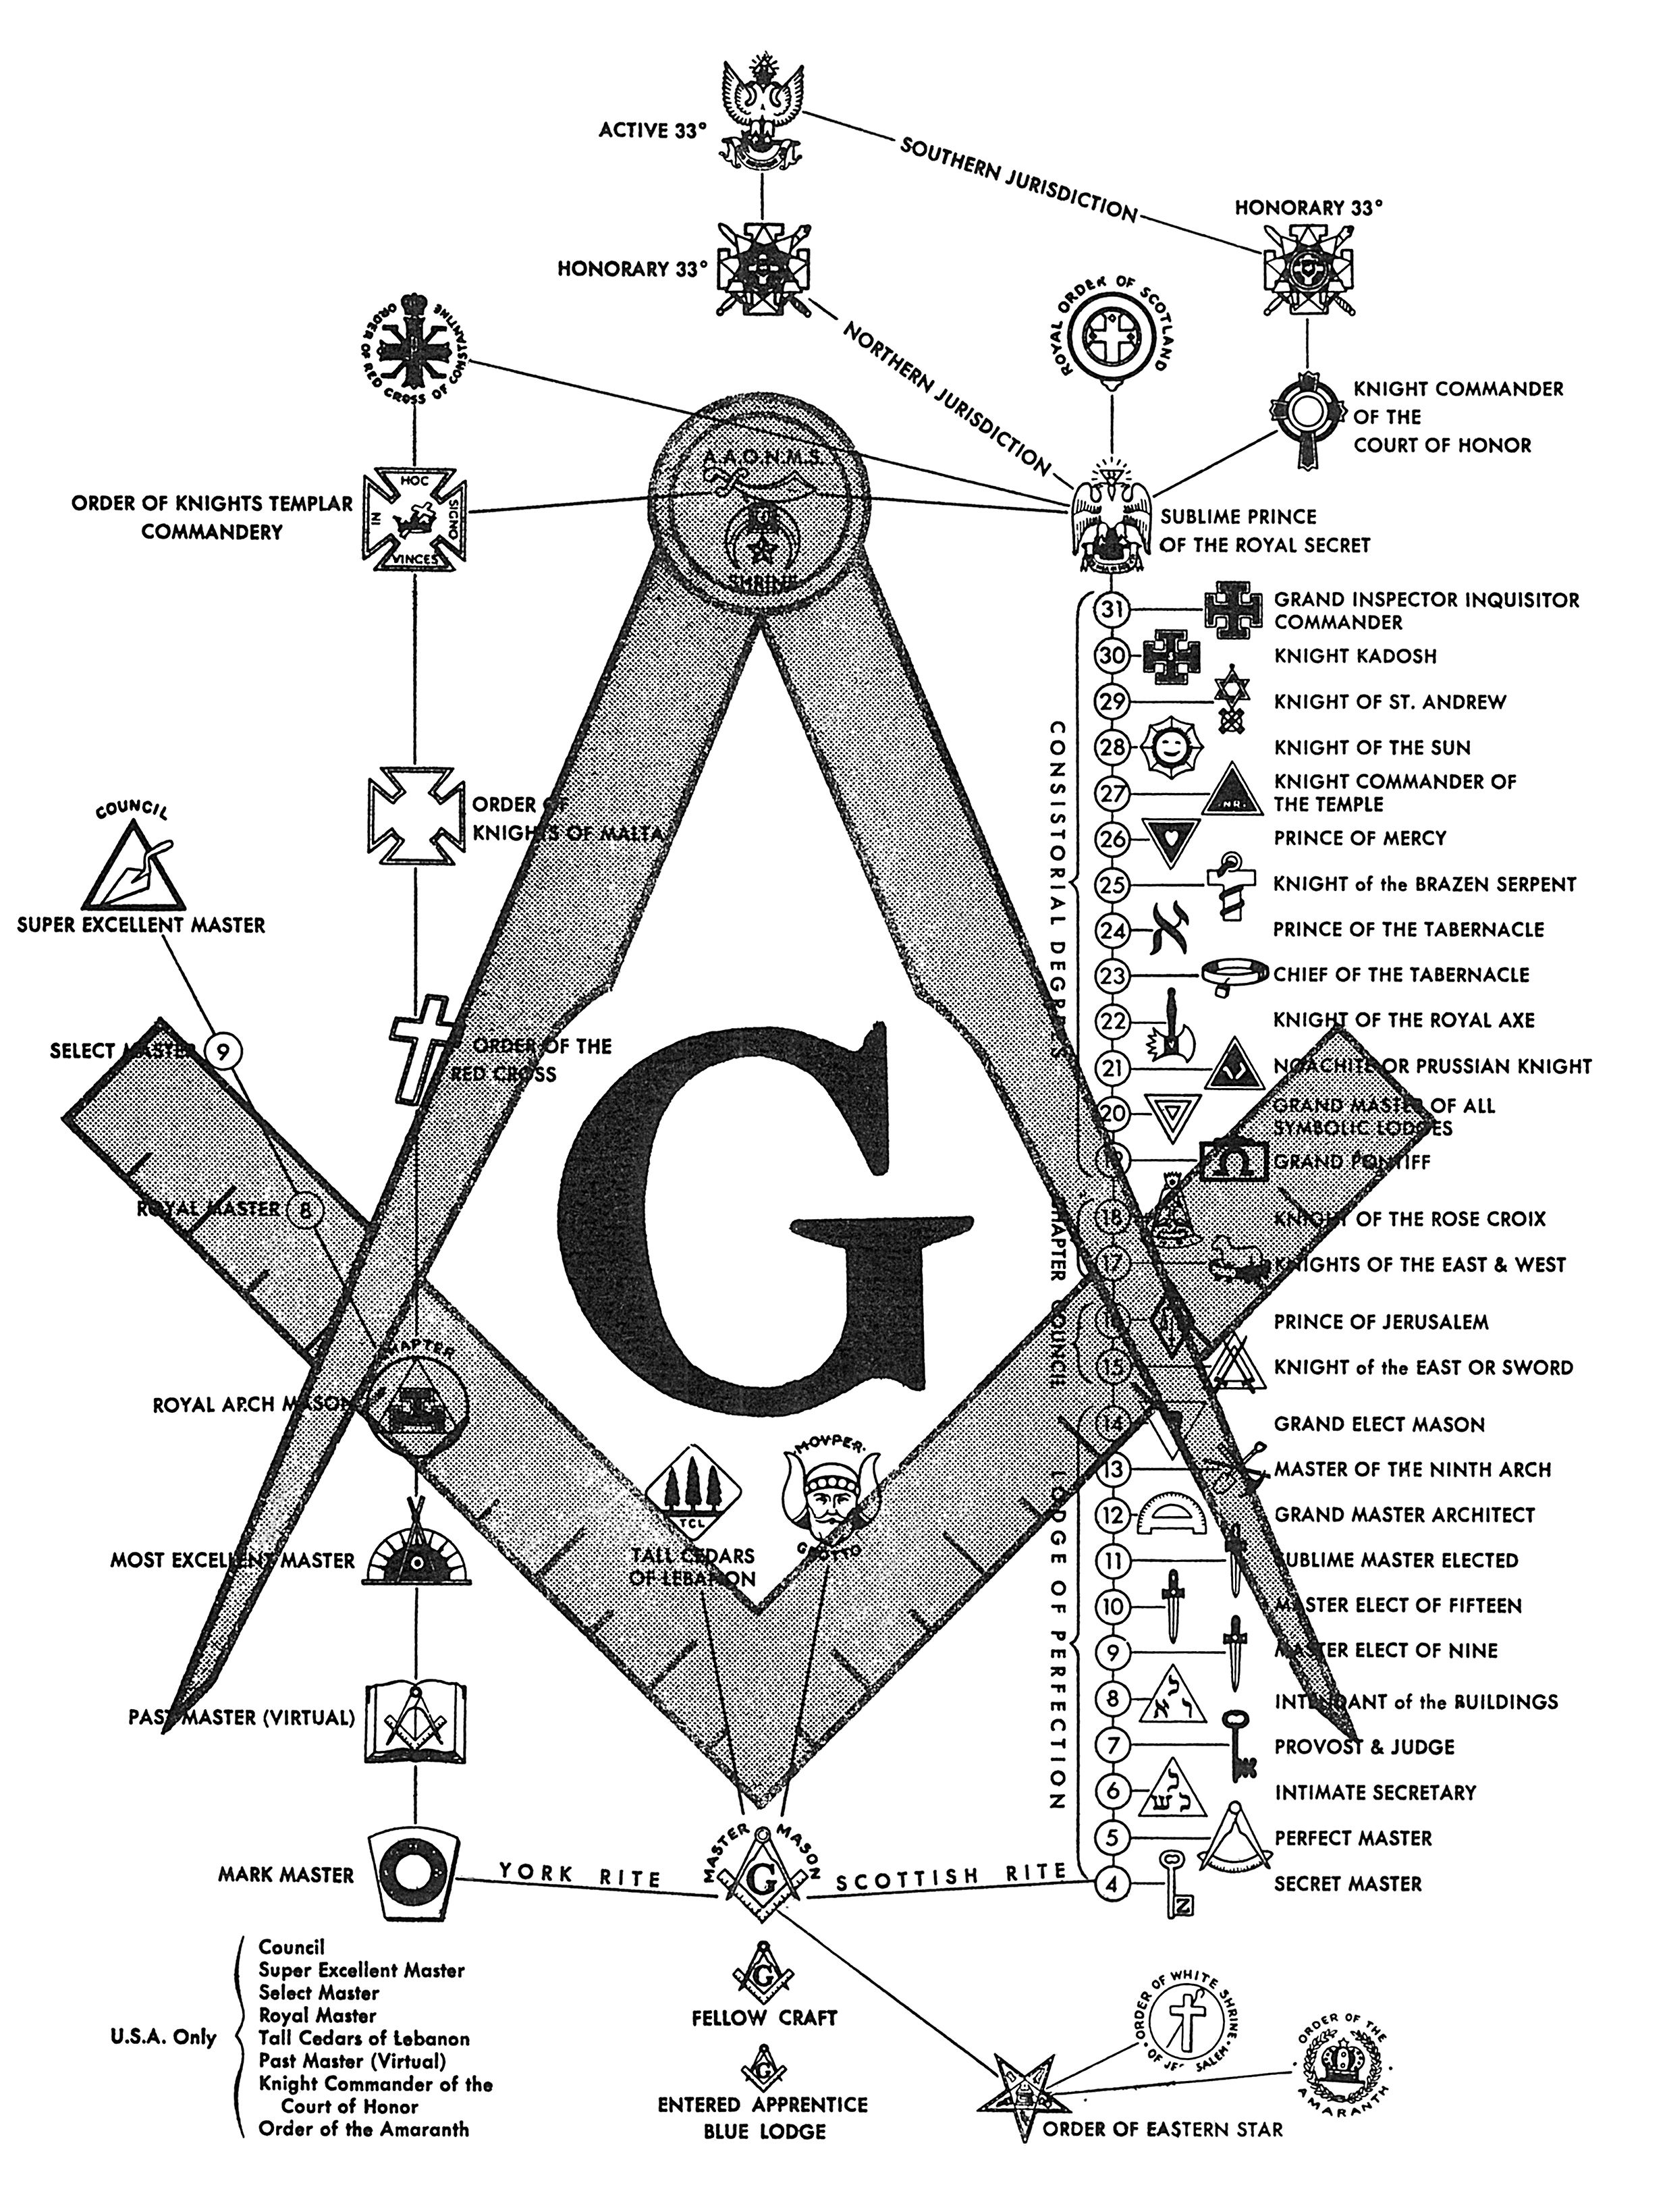 Libro de los secretos tatoo pinterest symbols knight and the masonic ring symbol is just a disguised pentagram with both the good lucifer and evil satan stars represented buycottarizona Gallery